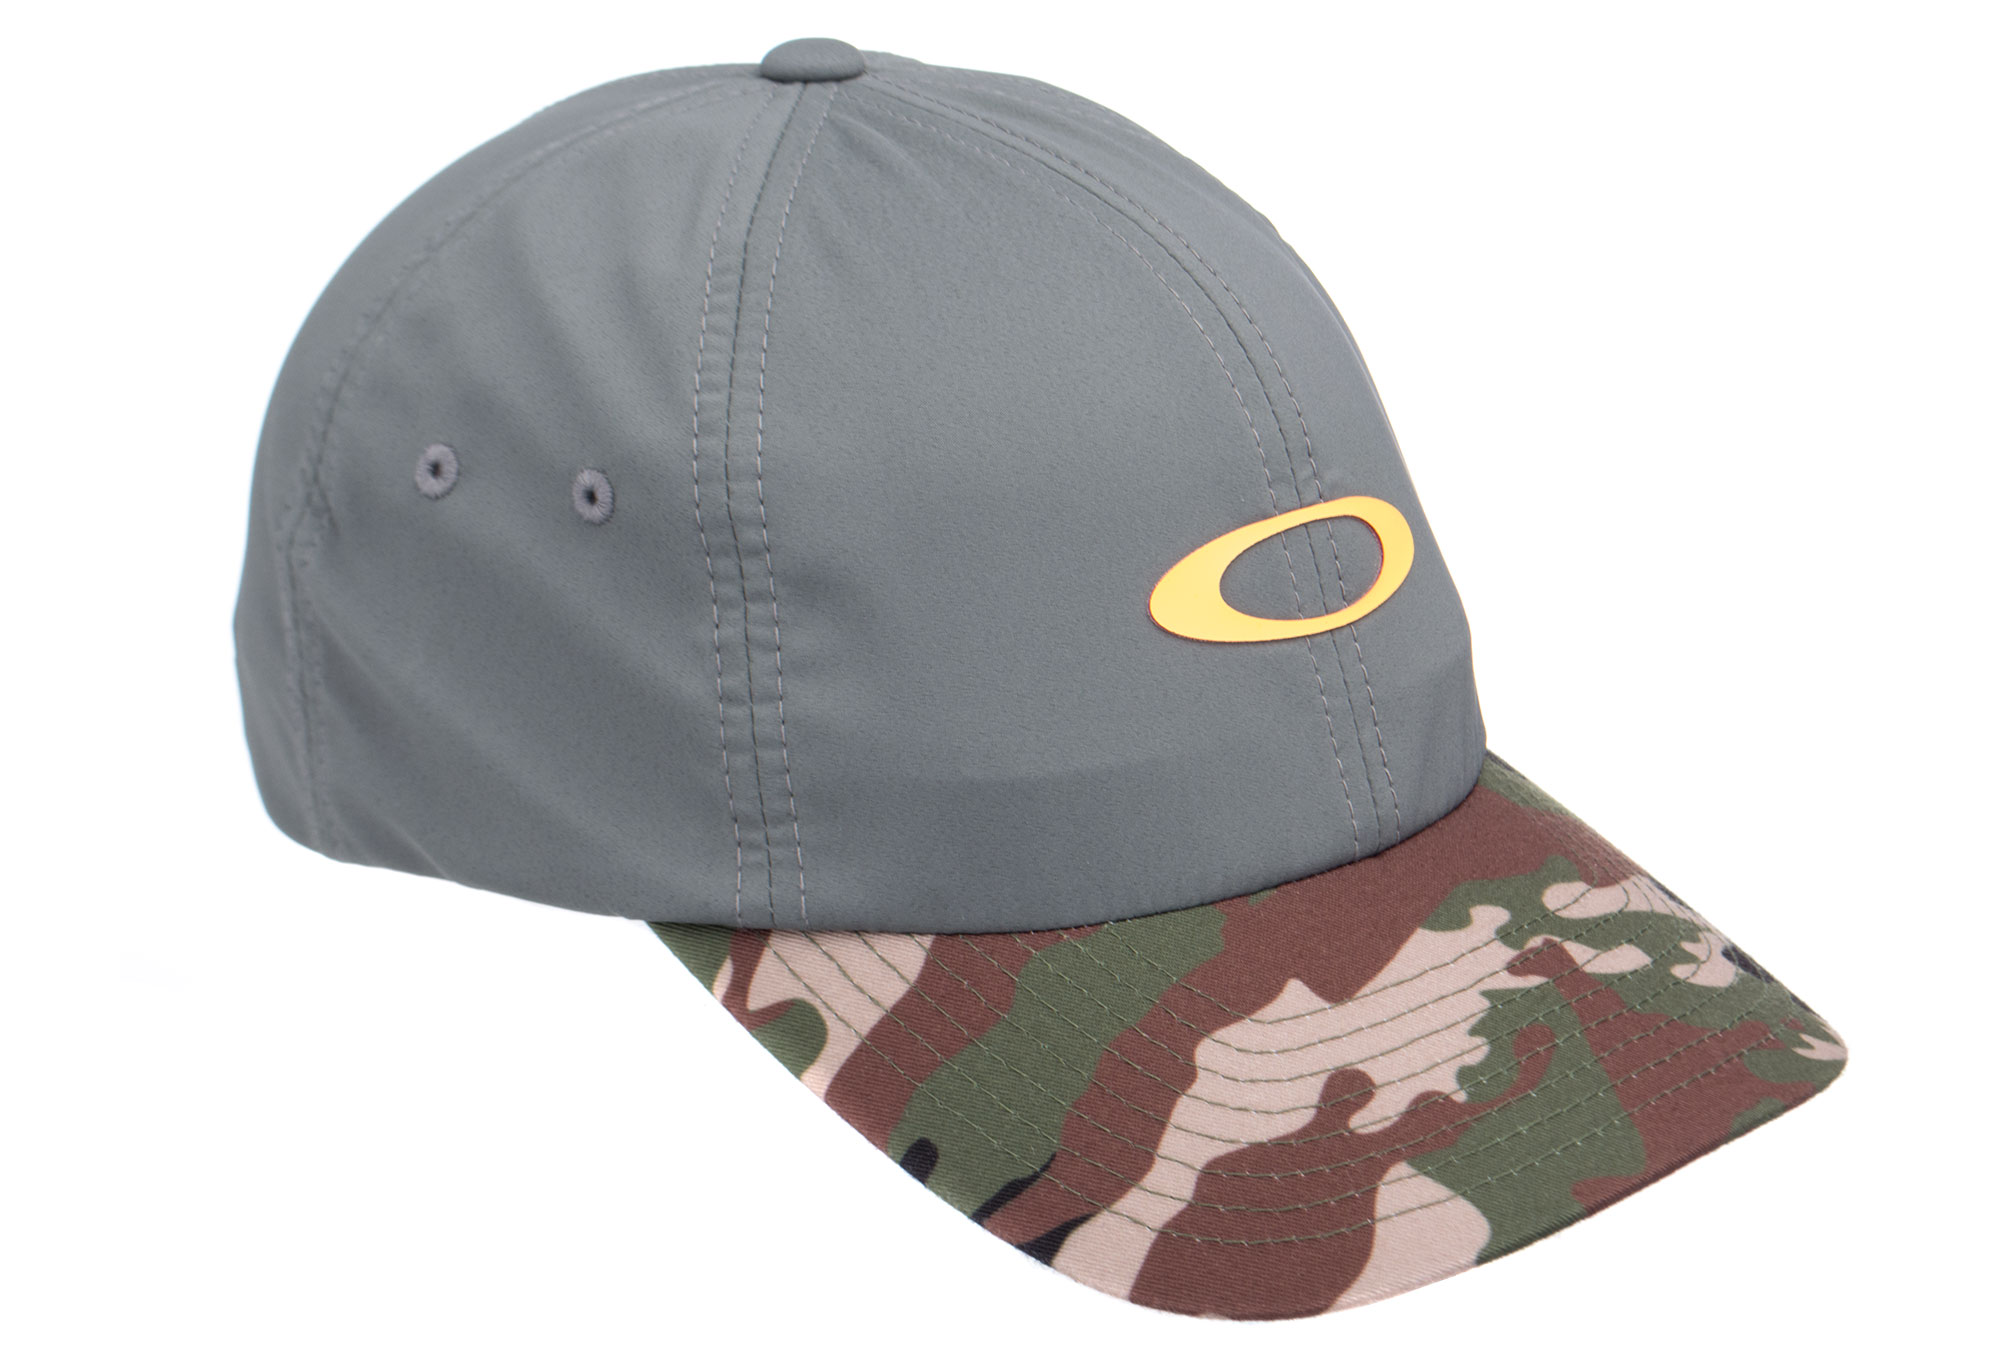 Oakley Cap 6 Panel Military Hat Forged Iron   Camo  65458cd7cab